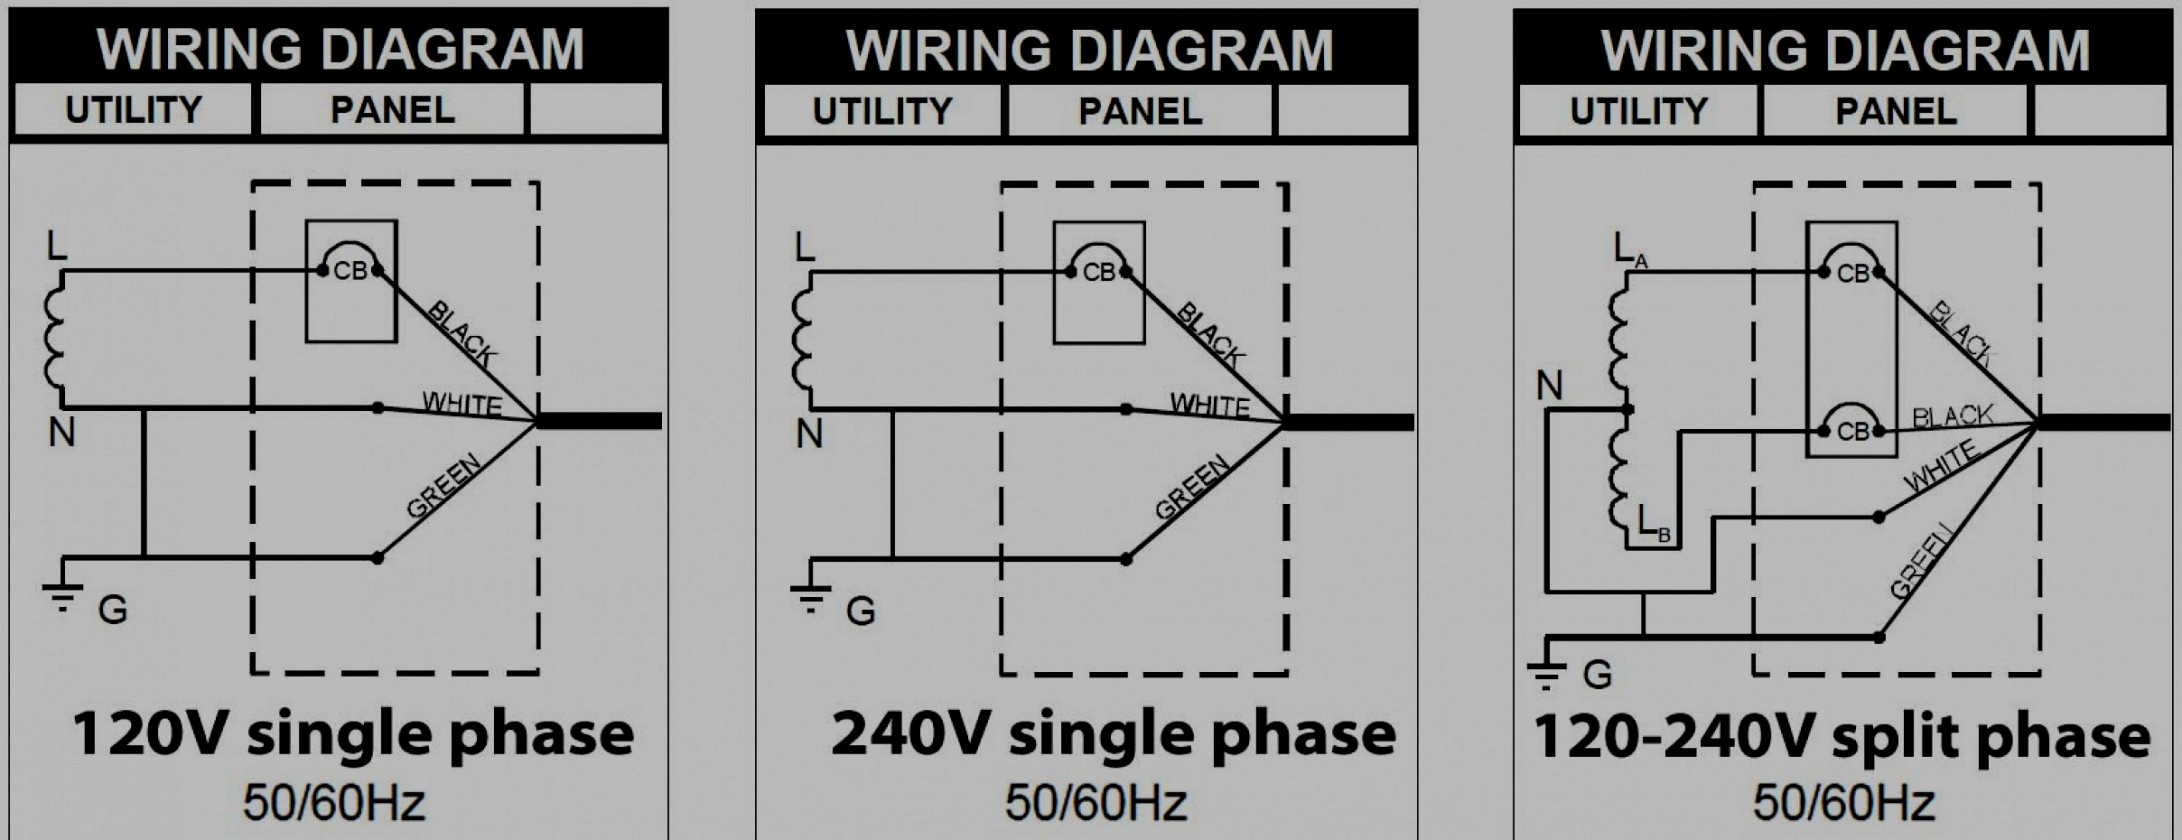 208 Volt Lighting Wiring Diagram | Wiring Diagram - 208 Volt Single Phase Wiring Diagram